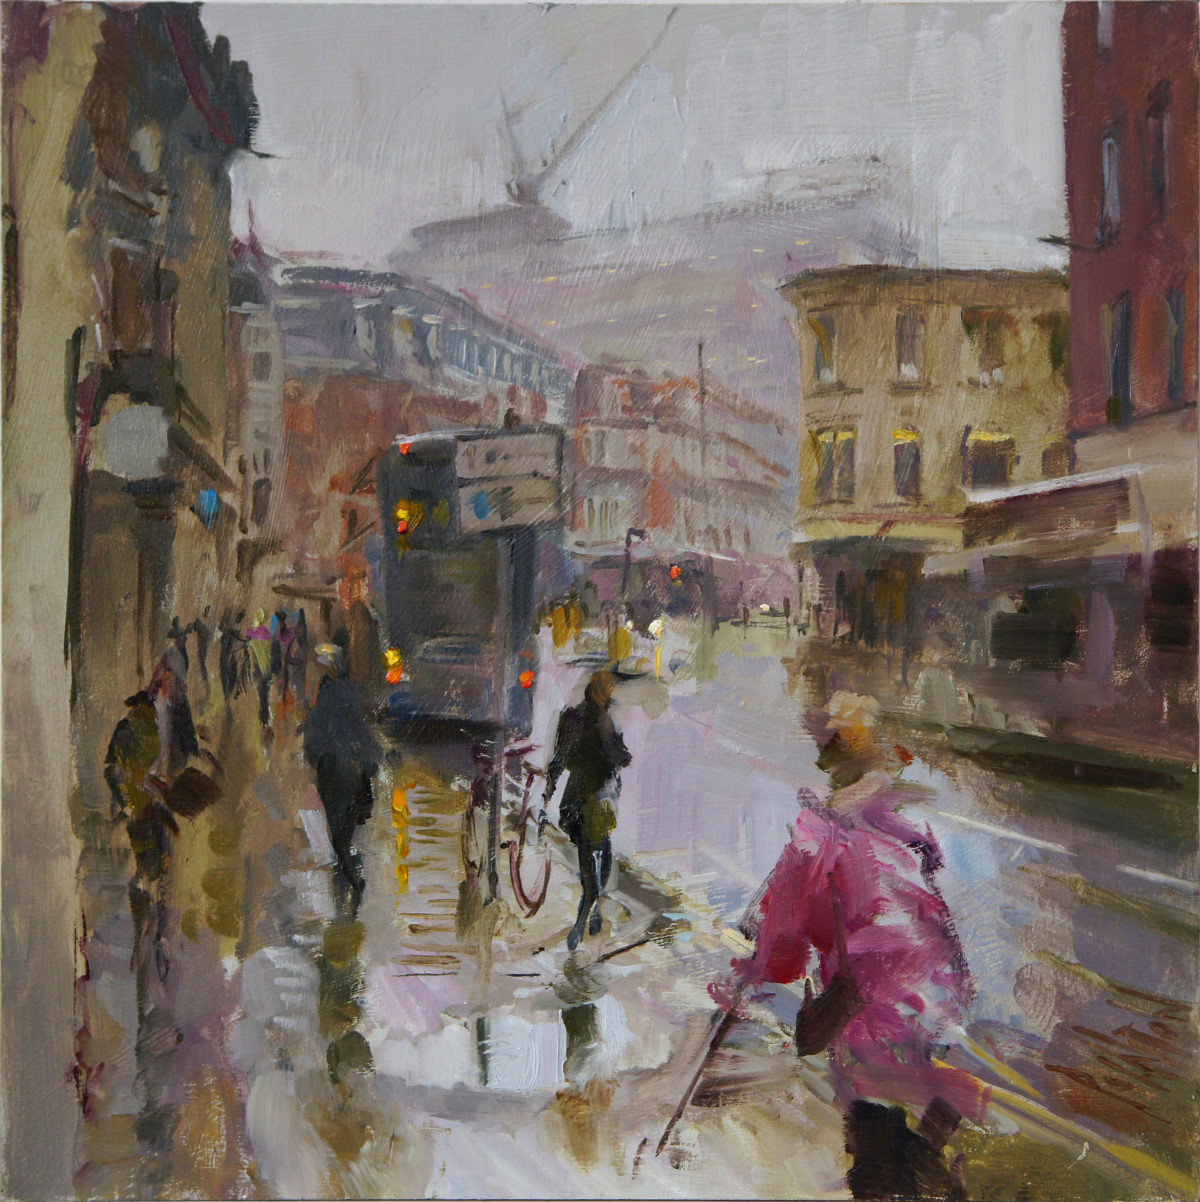 Artist Rob Pointon, 'Changing Skyline', Westlegate, Oil, 40x40cm, SOLD. Paint Out Norwich 2018 1st Prize Winner